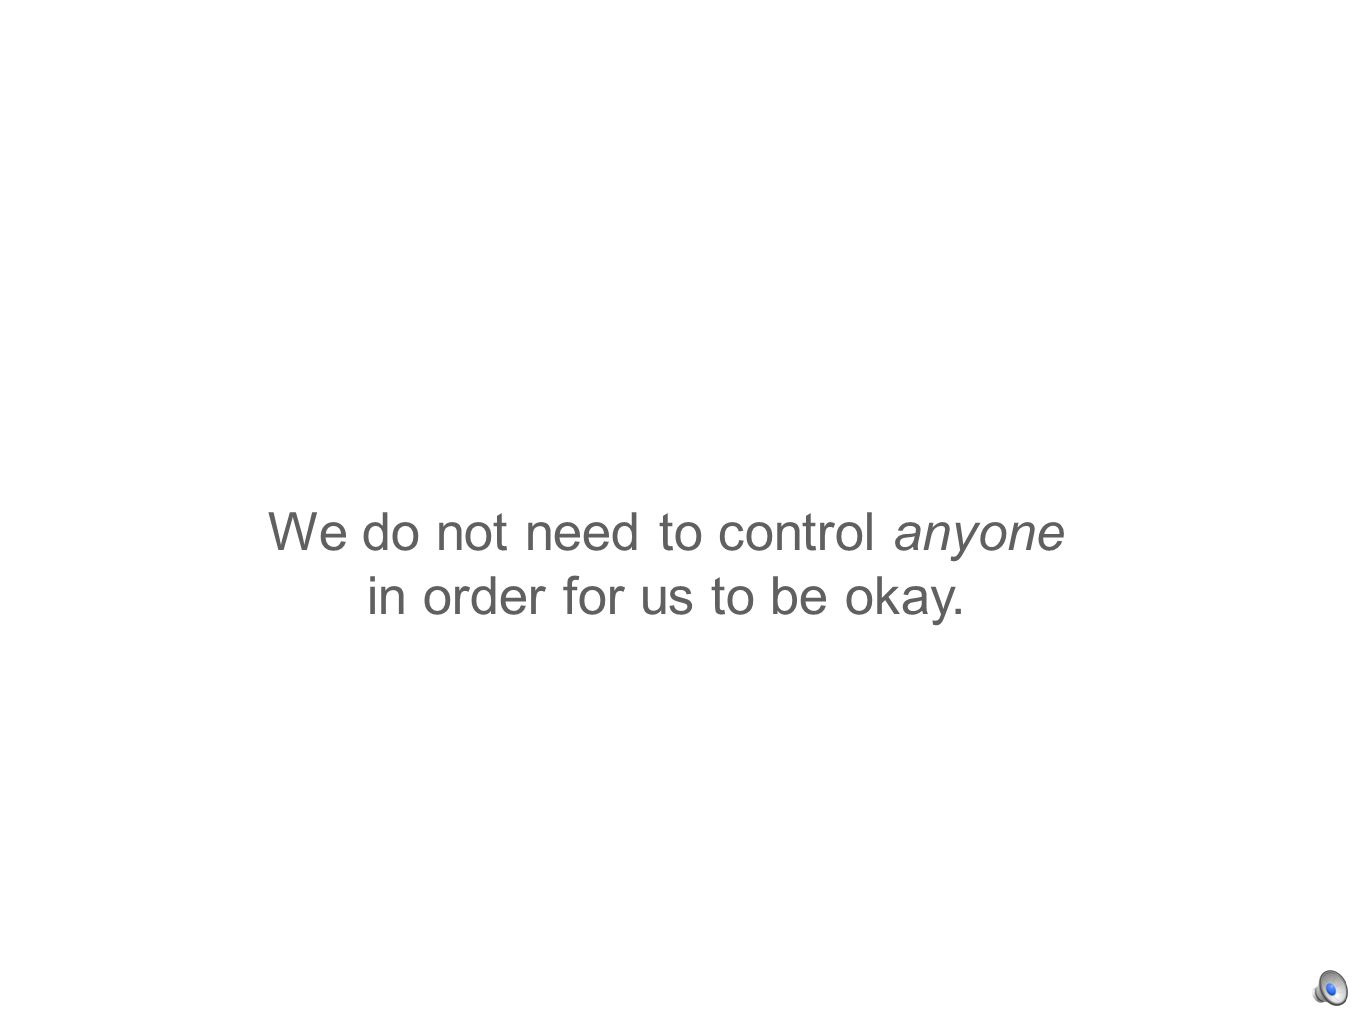 We do not need to control anyone in order for us to be okay.